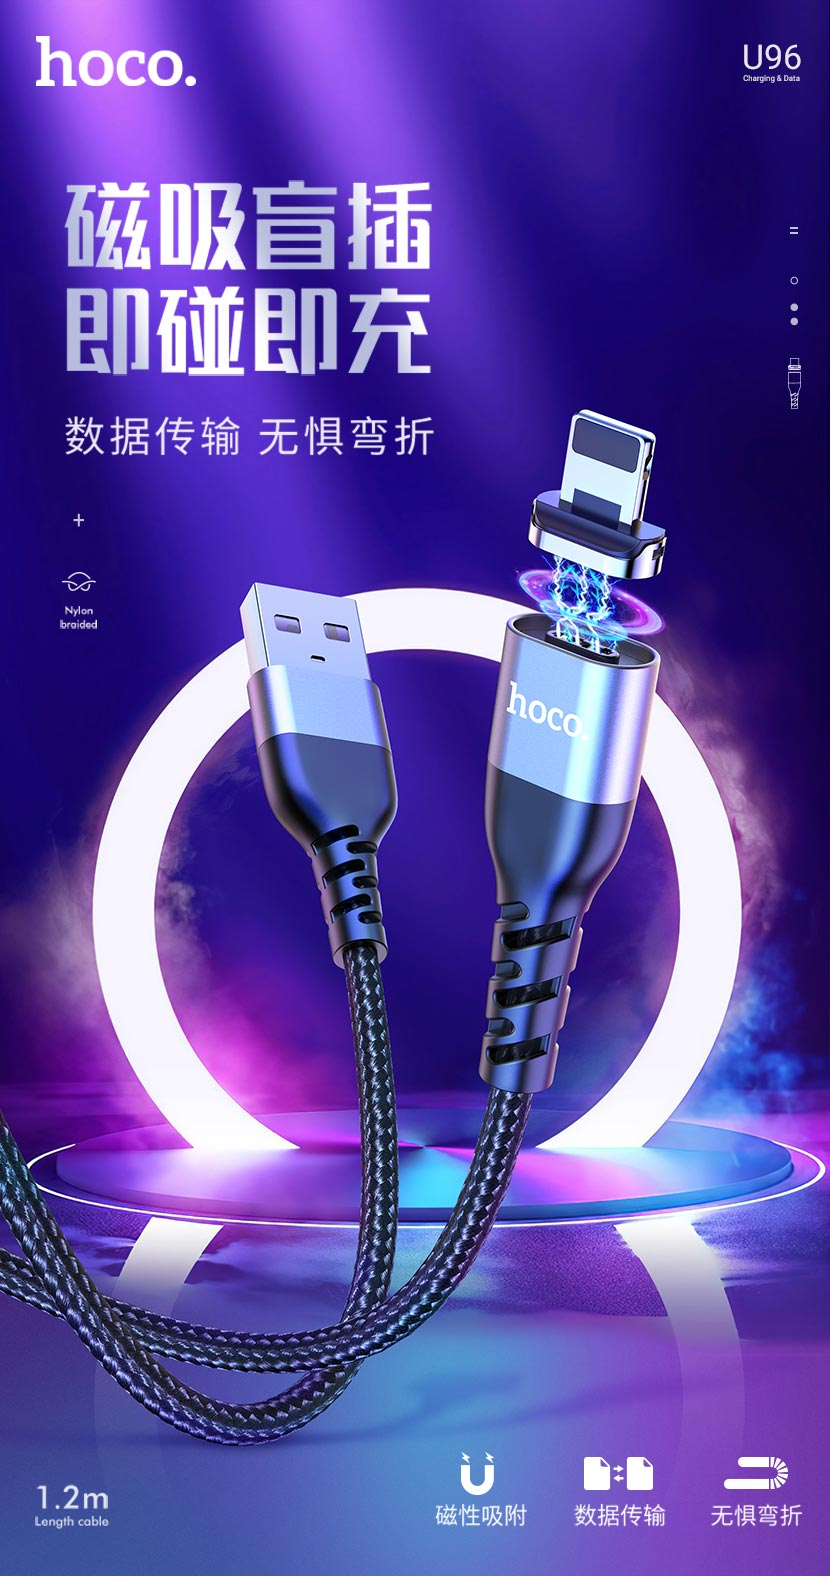 hoco news u96 traveller magnetic charging data cable cn